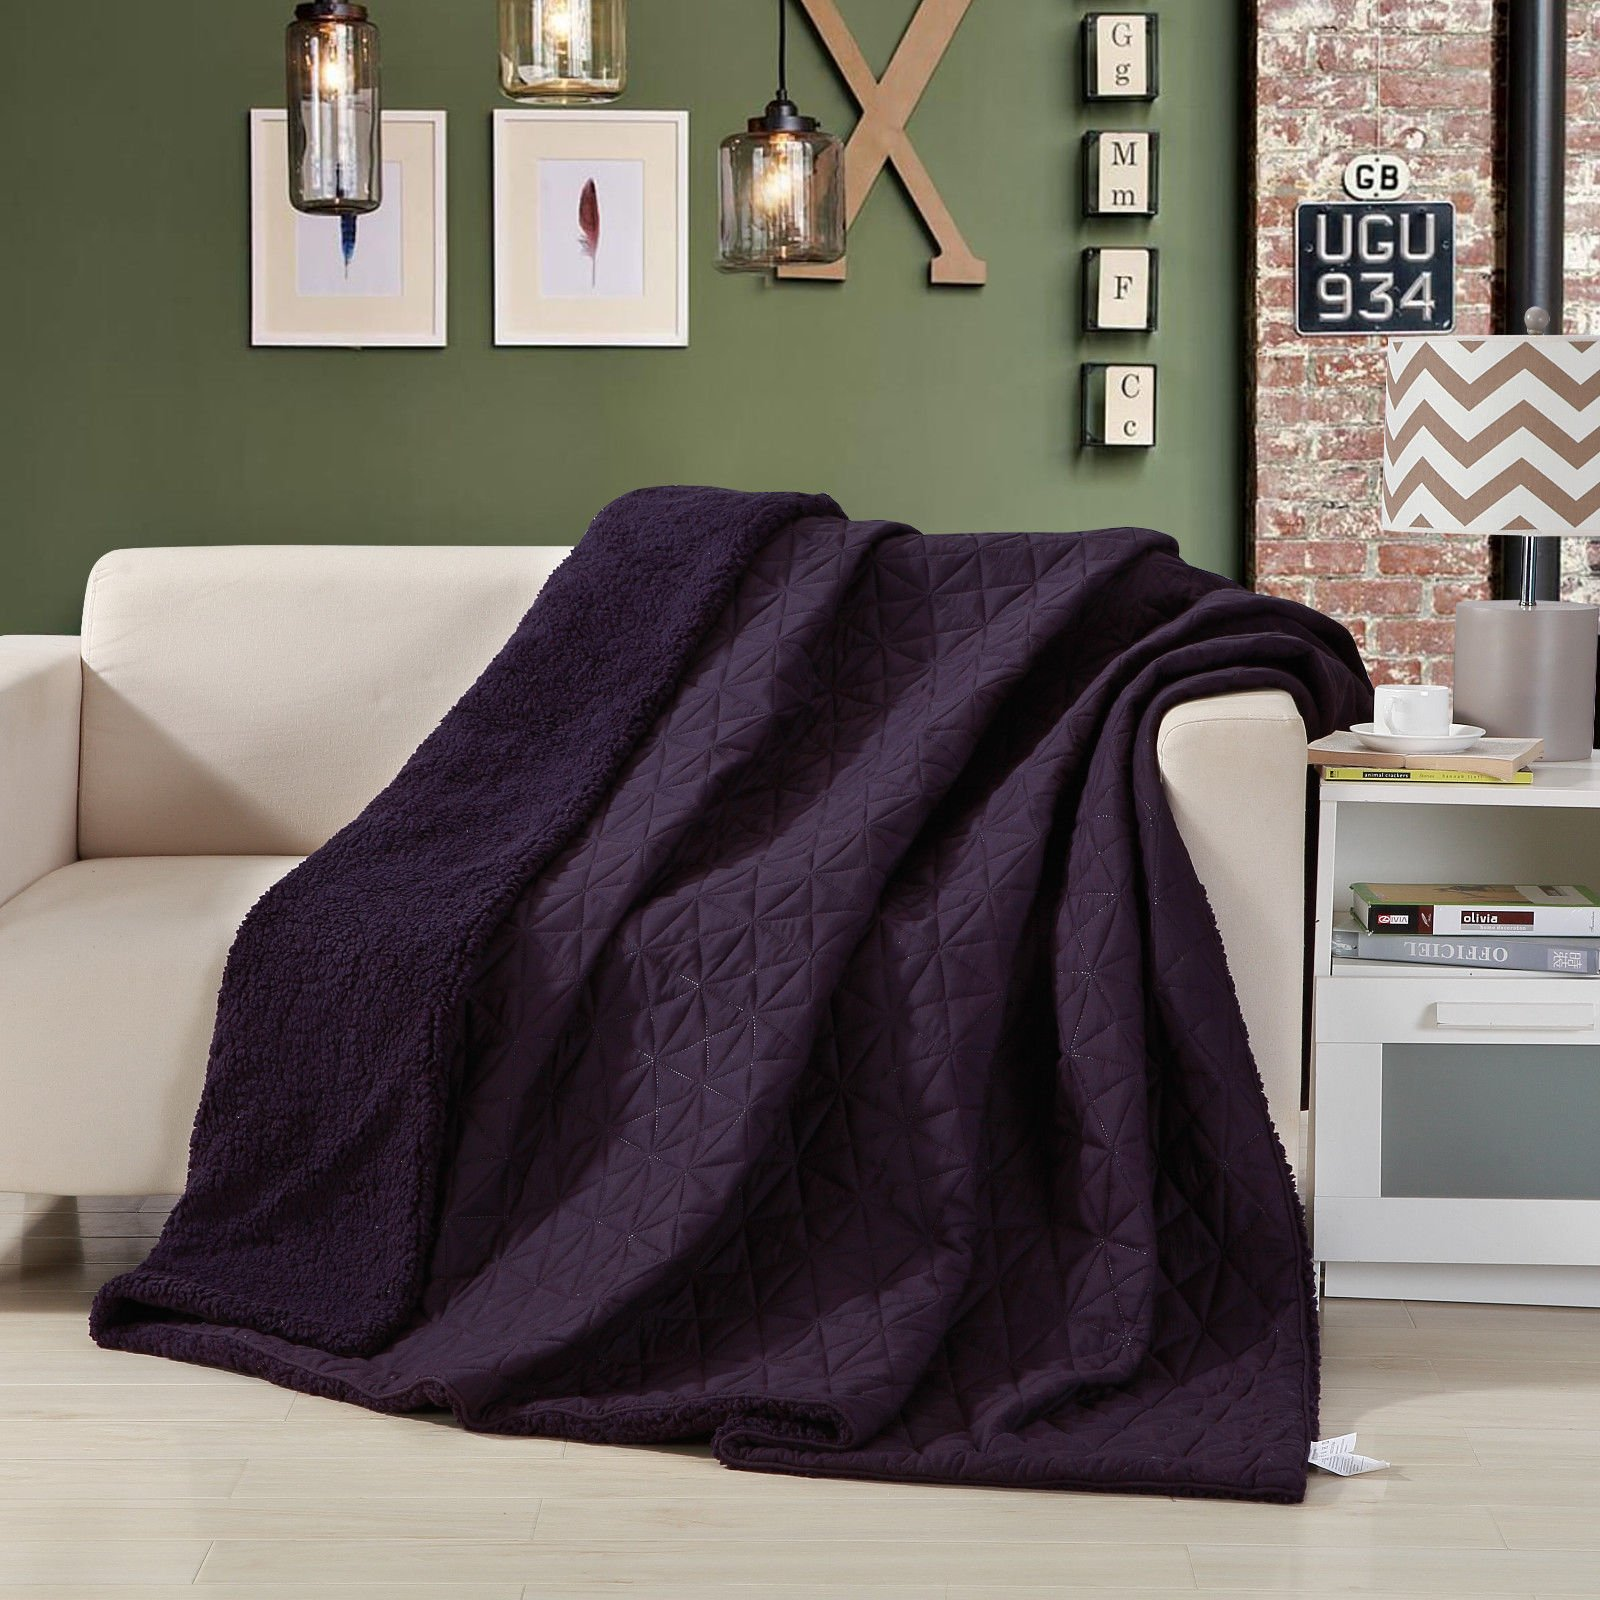 DaDa Bedding Eggplant Aubergine Reversible Soft Stitched Print with Sherpa Backside Textured Quilted Ultra Sonic College Dorm Throw Blanket Coverlet Bedspread, Purple, Twin